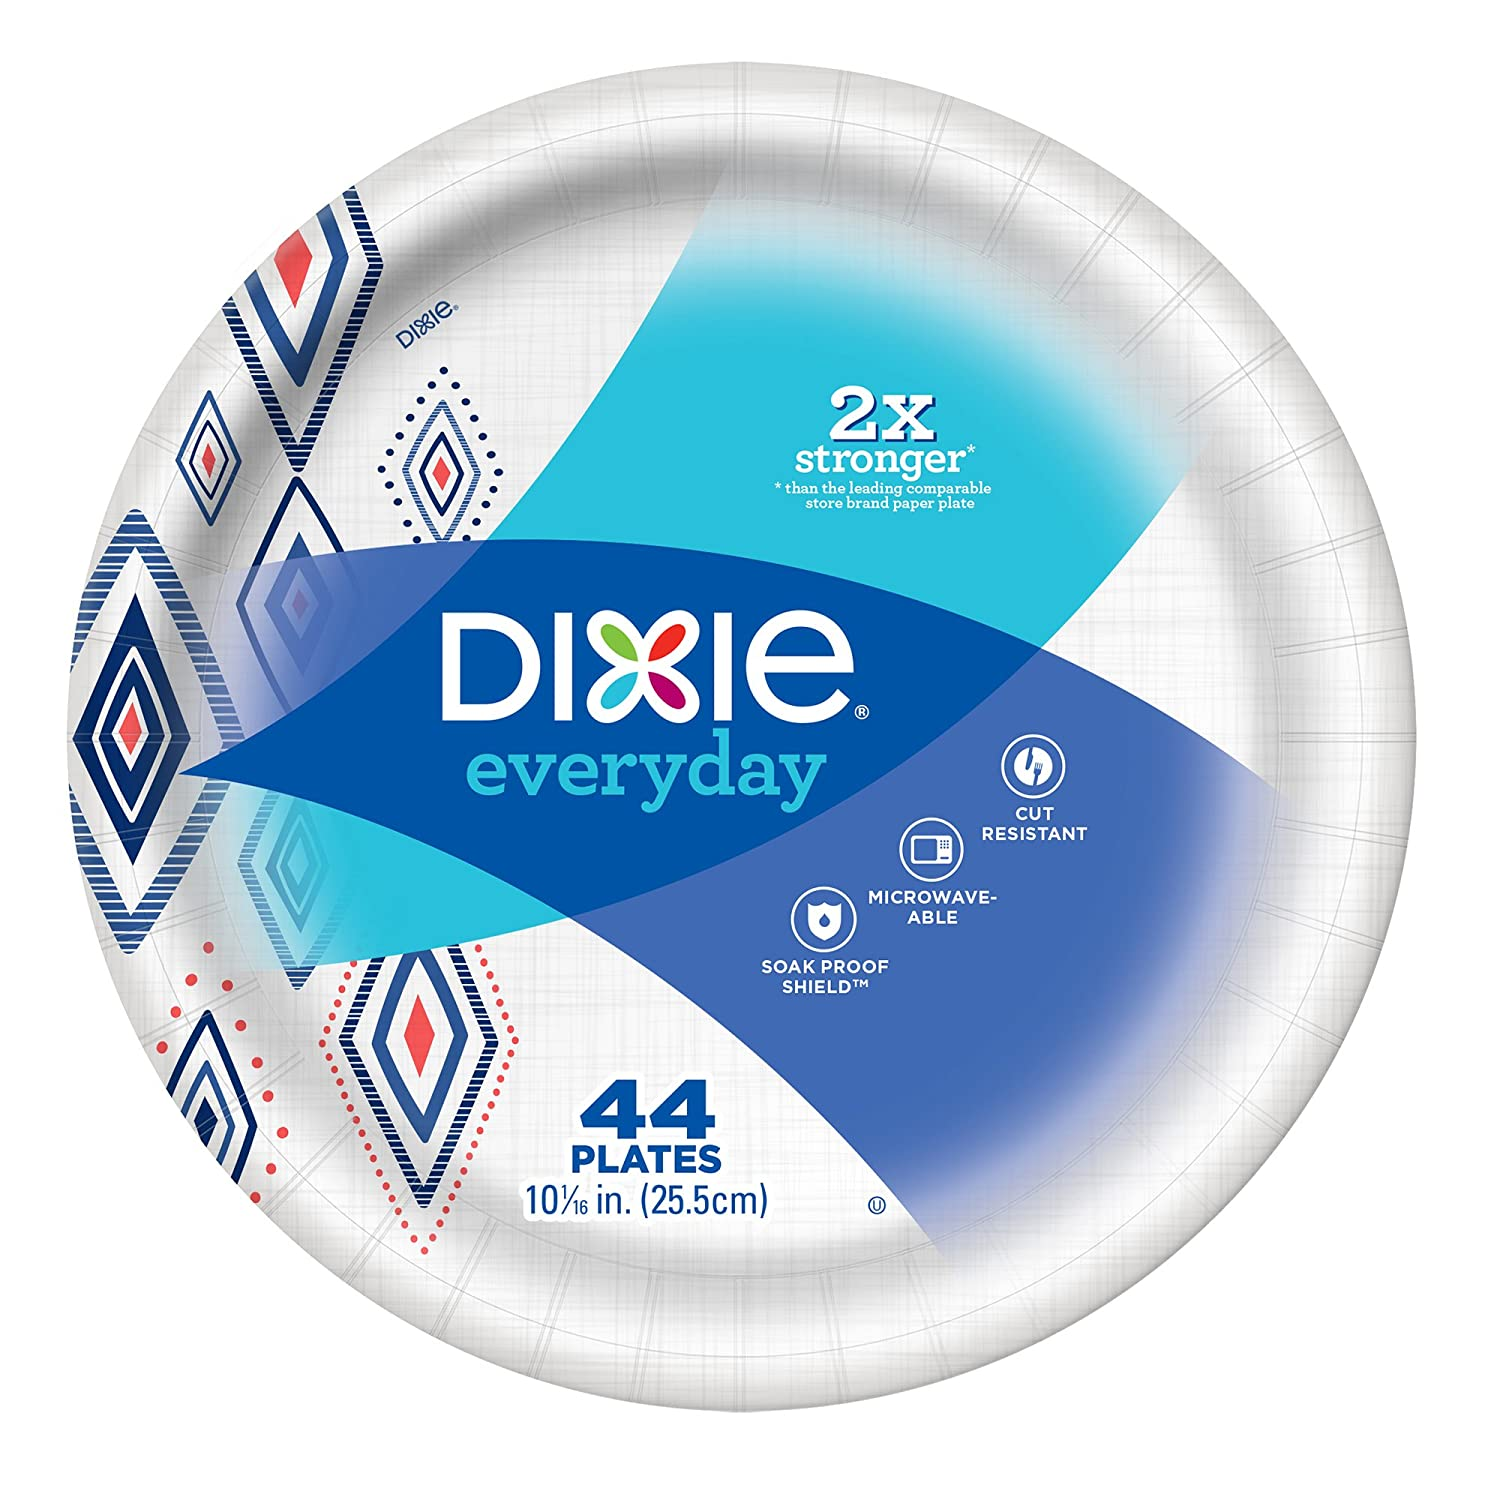 """Dixie Everyday Paper Plates,10 1/16"""" Plate, 220 Count,  Exclusive Design, 5 Packs of 44 Plates, Dinner Size Printed Disposable Plates"""